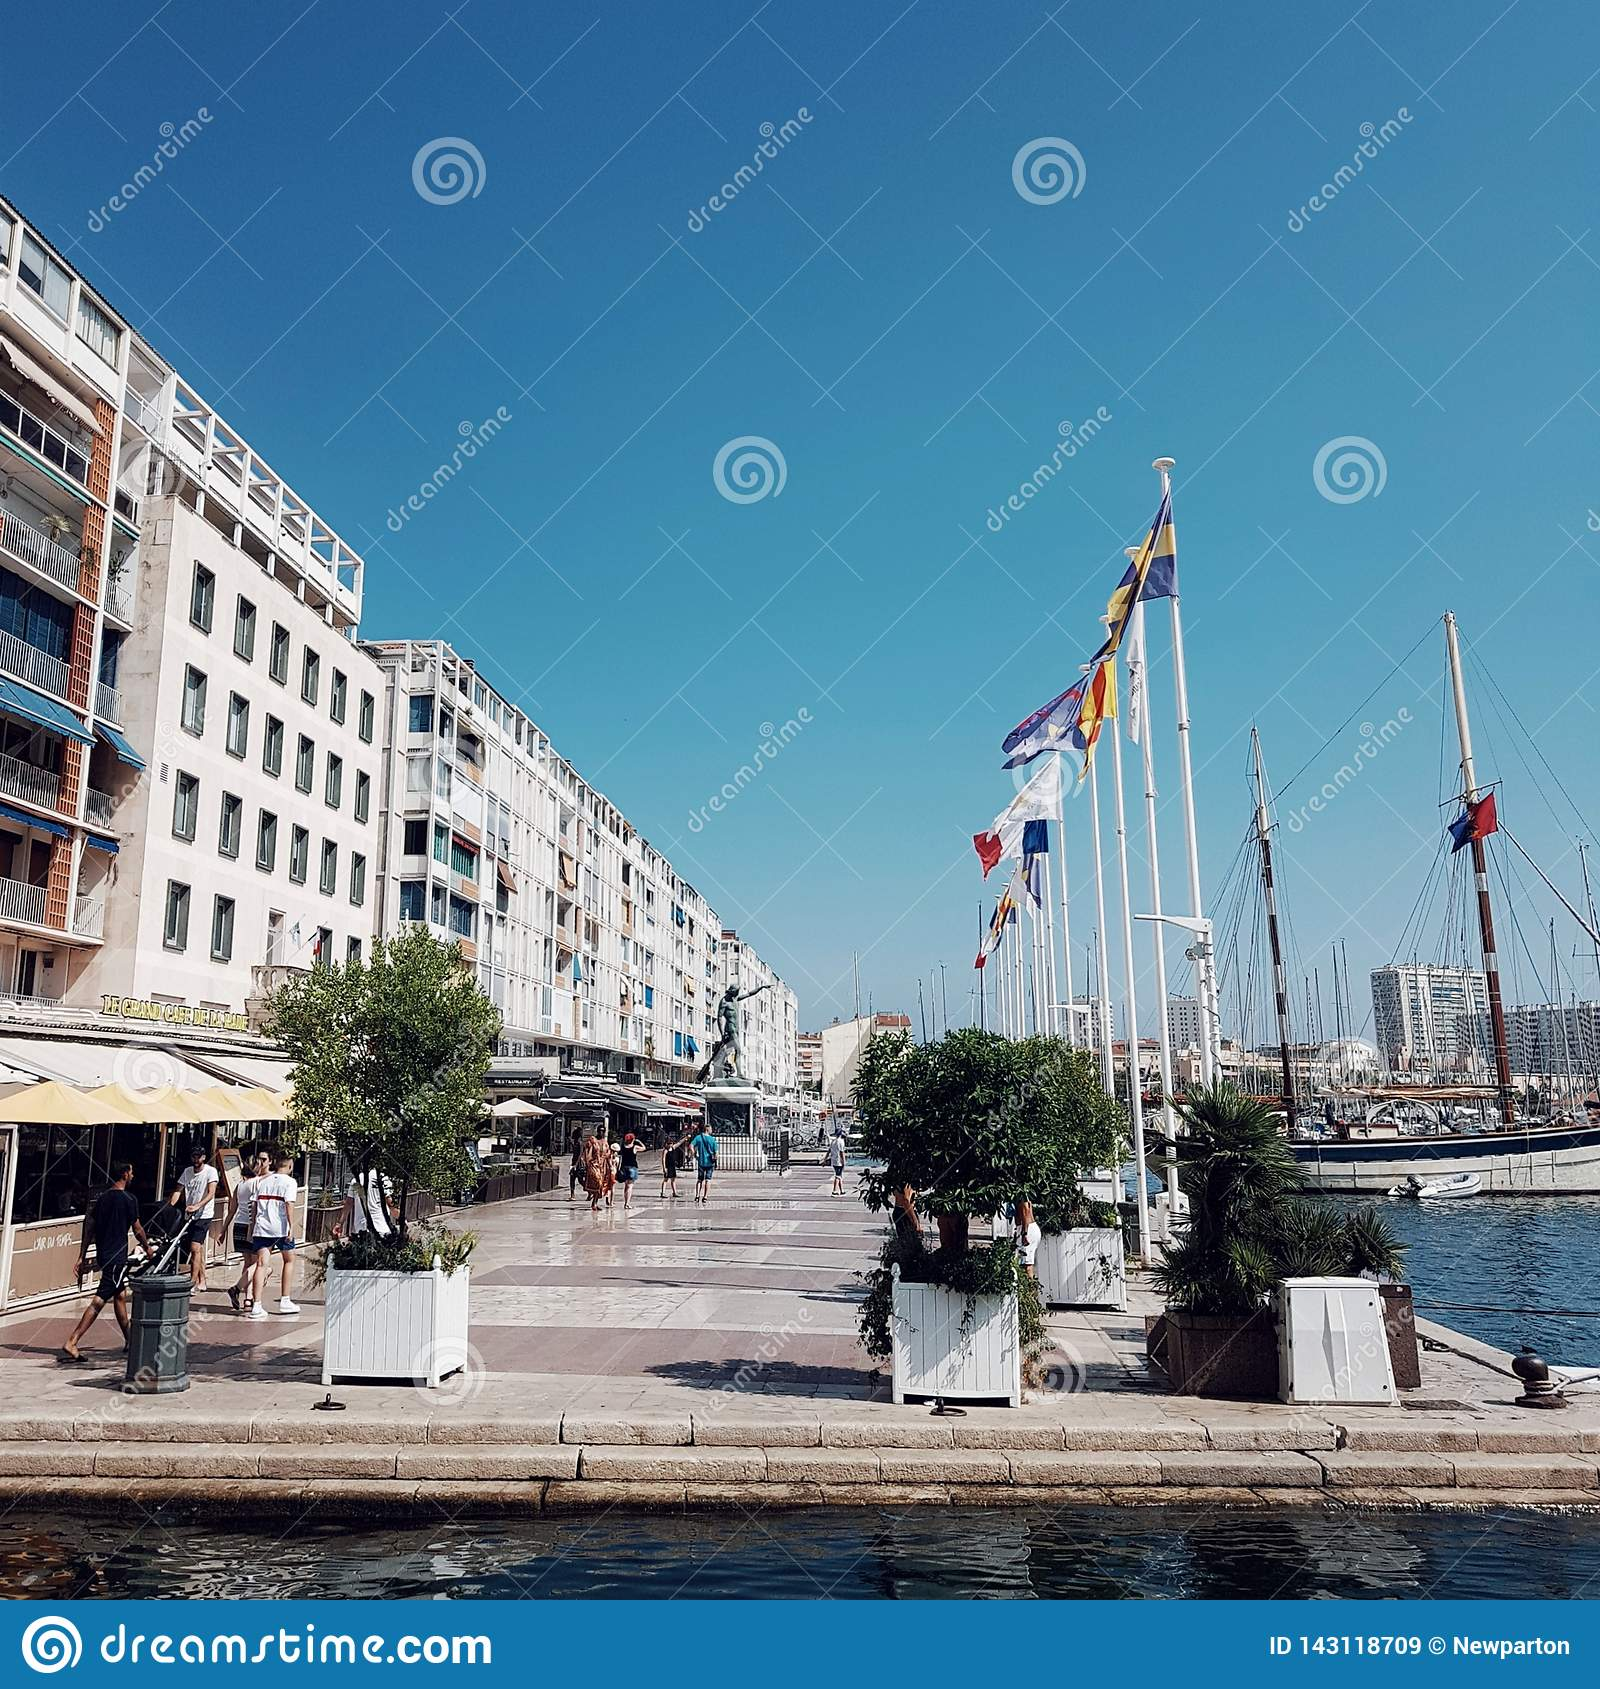 Port Toulon The Port Of Toulon Provence French Riviara France Editorial